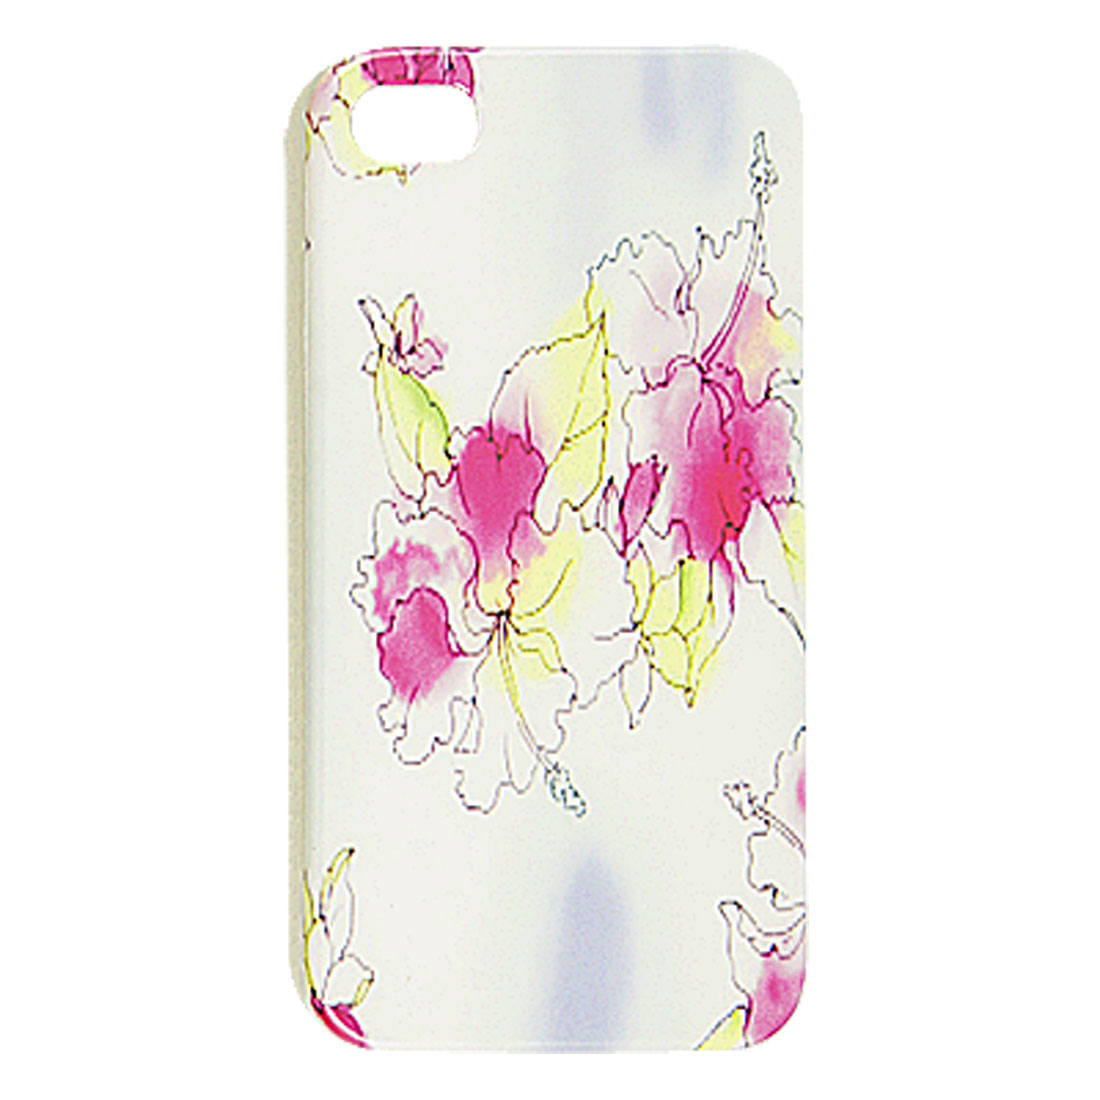 White IMD Hard Plastic Hibiscus Flower Pattern Back Case for iPhone 4 4G 4S